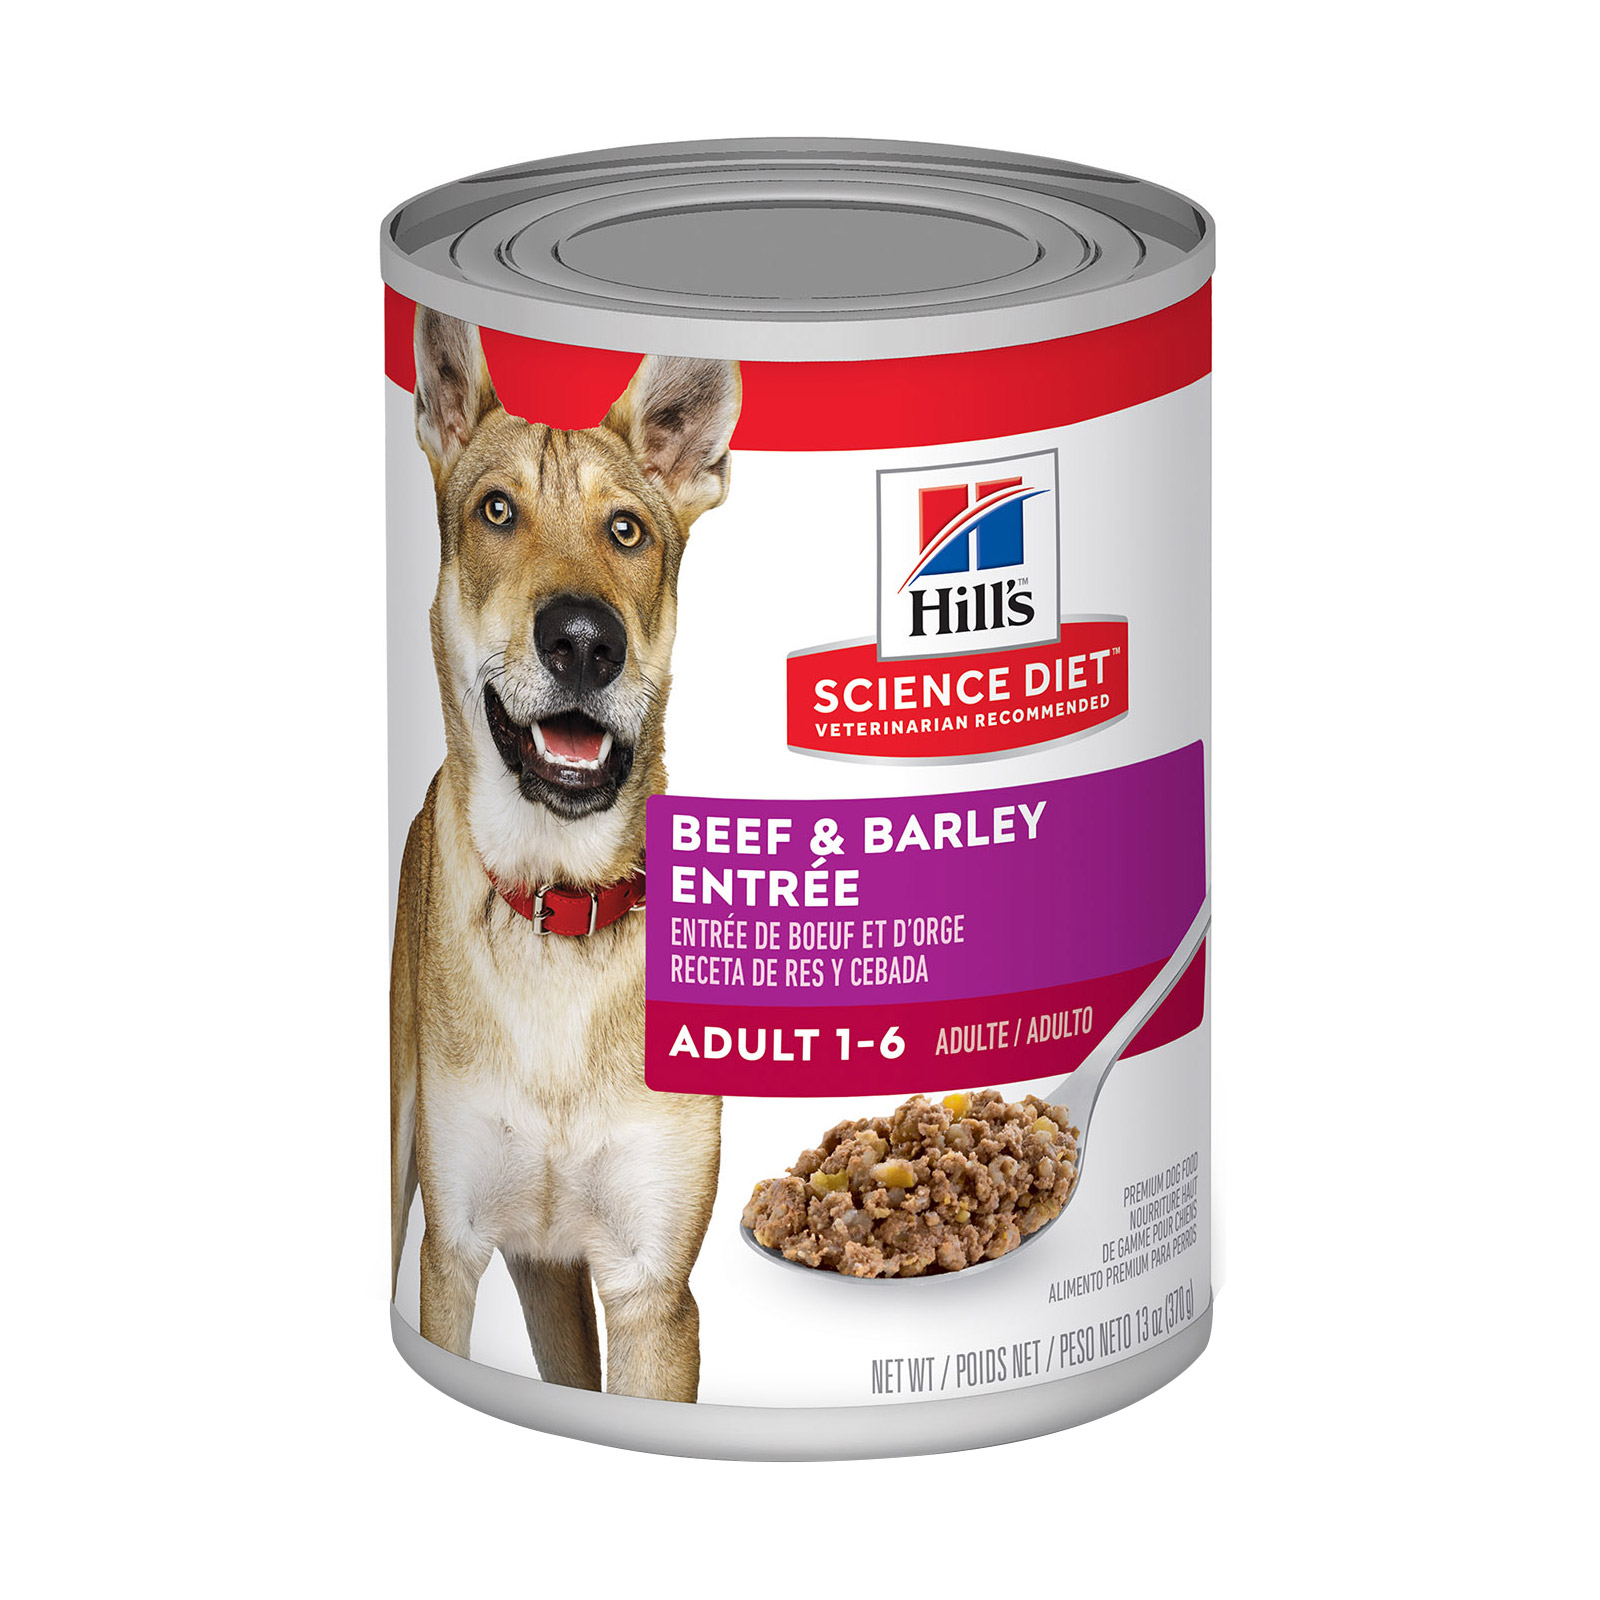 Hills Science Diet Adult Beef & Barley Entrée Canned Dog Food